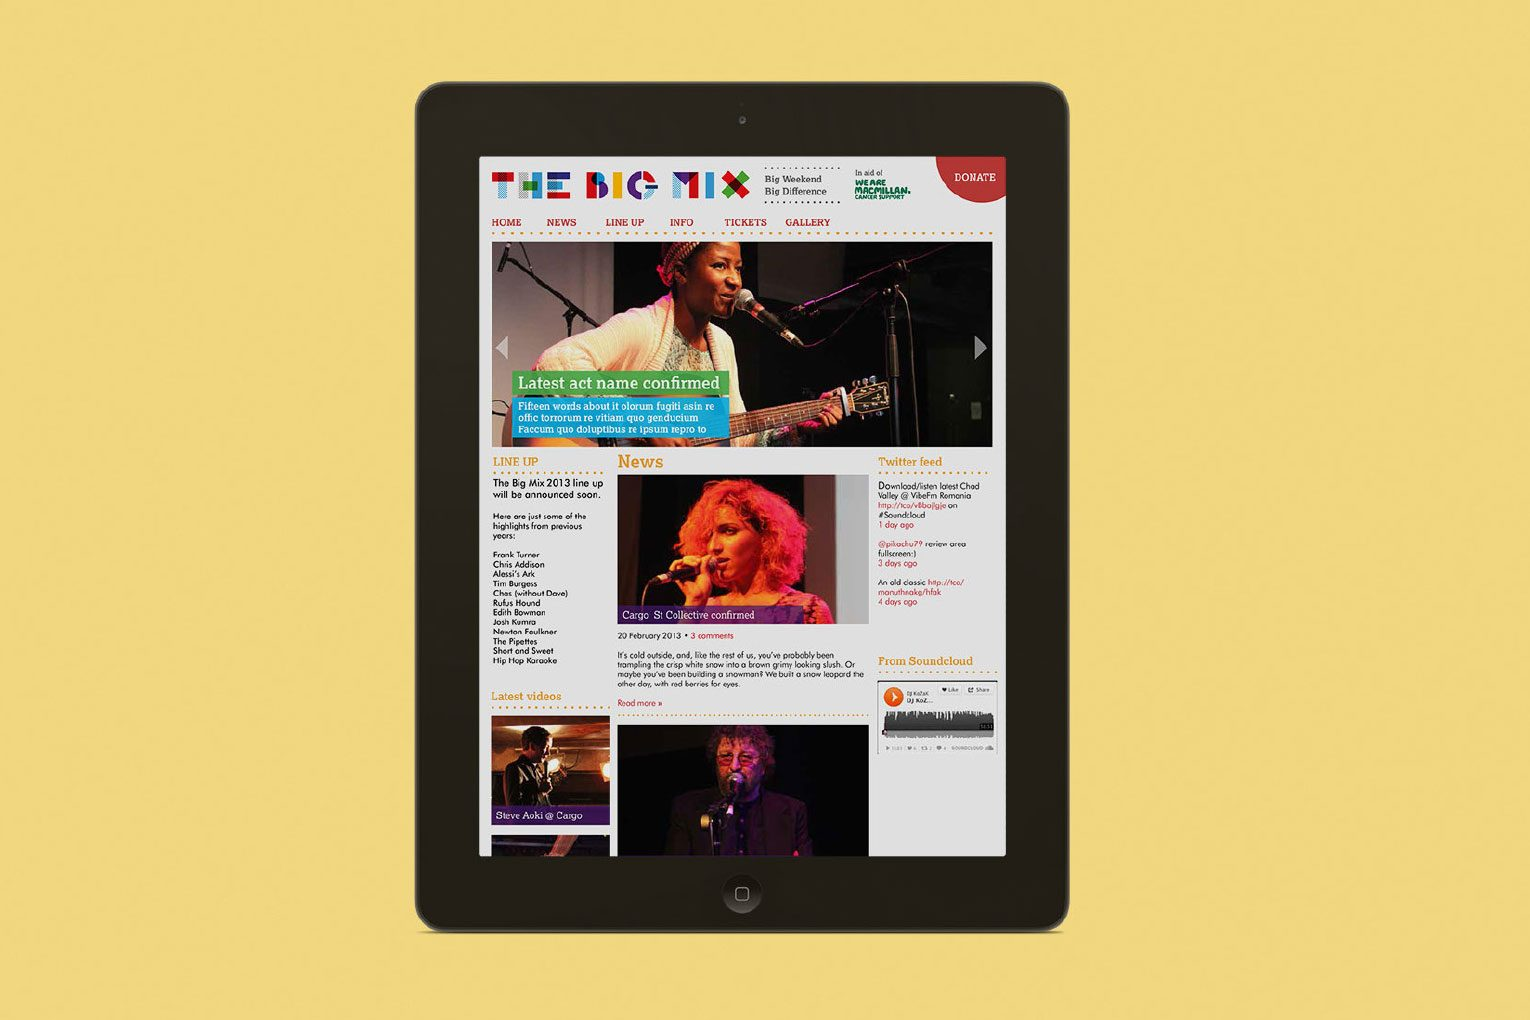 Festival branding homepage of Big Mix charity music festival on iPad.